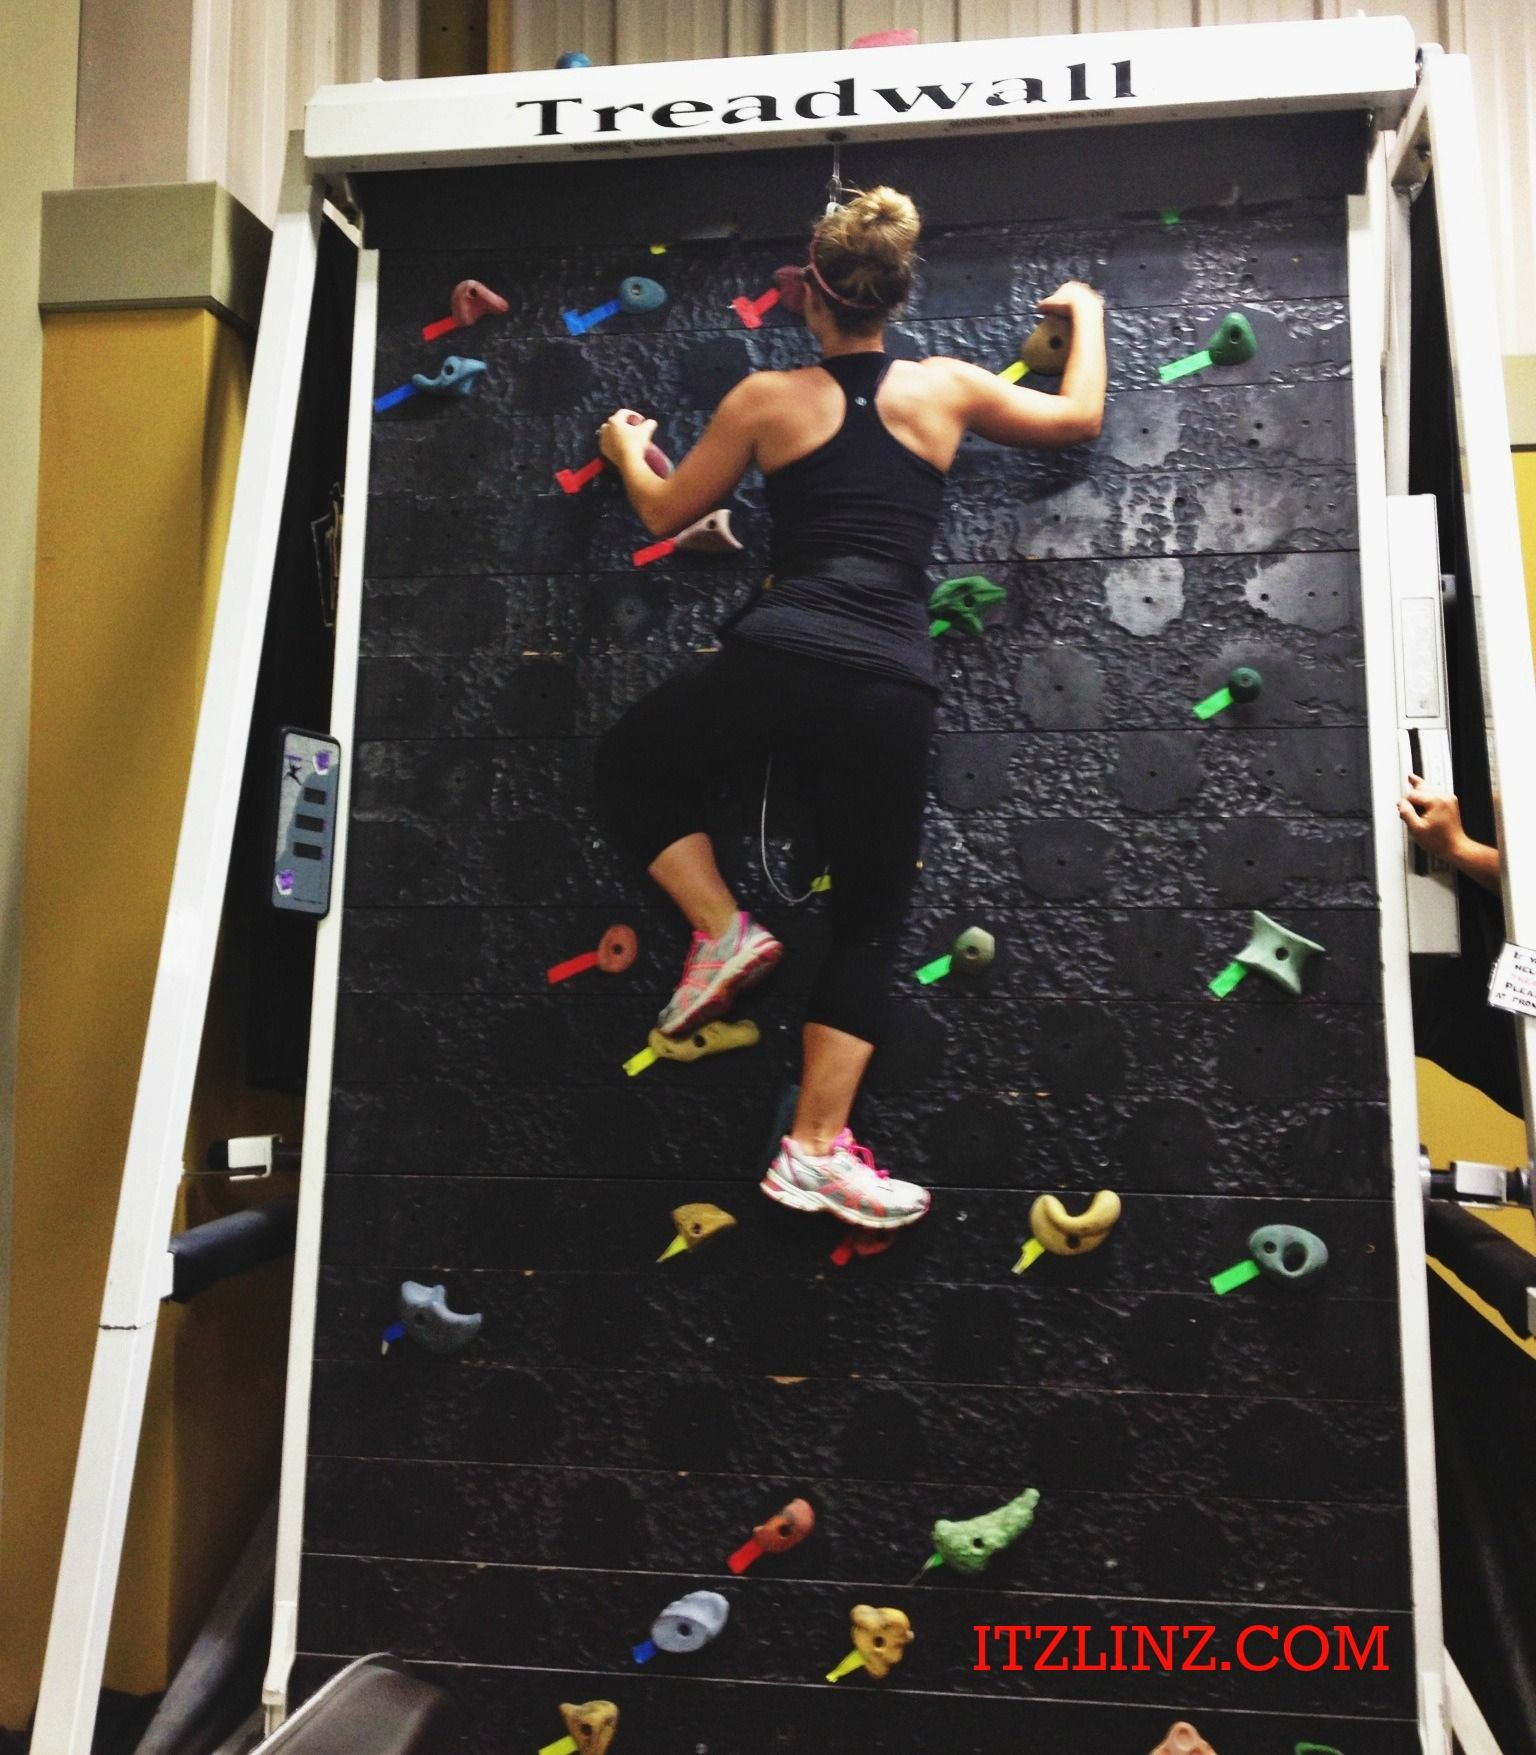 The Treadwall M4 Puts Rock Climbing Into The Home Gyms Of Guys pics